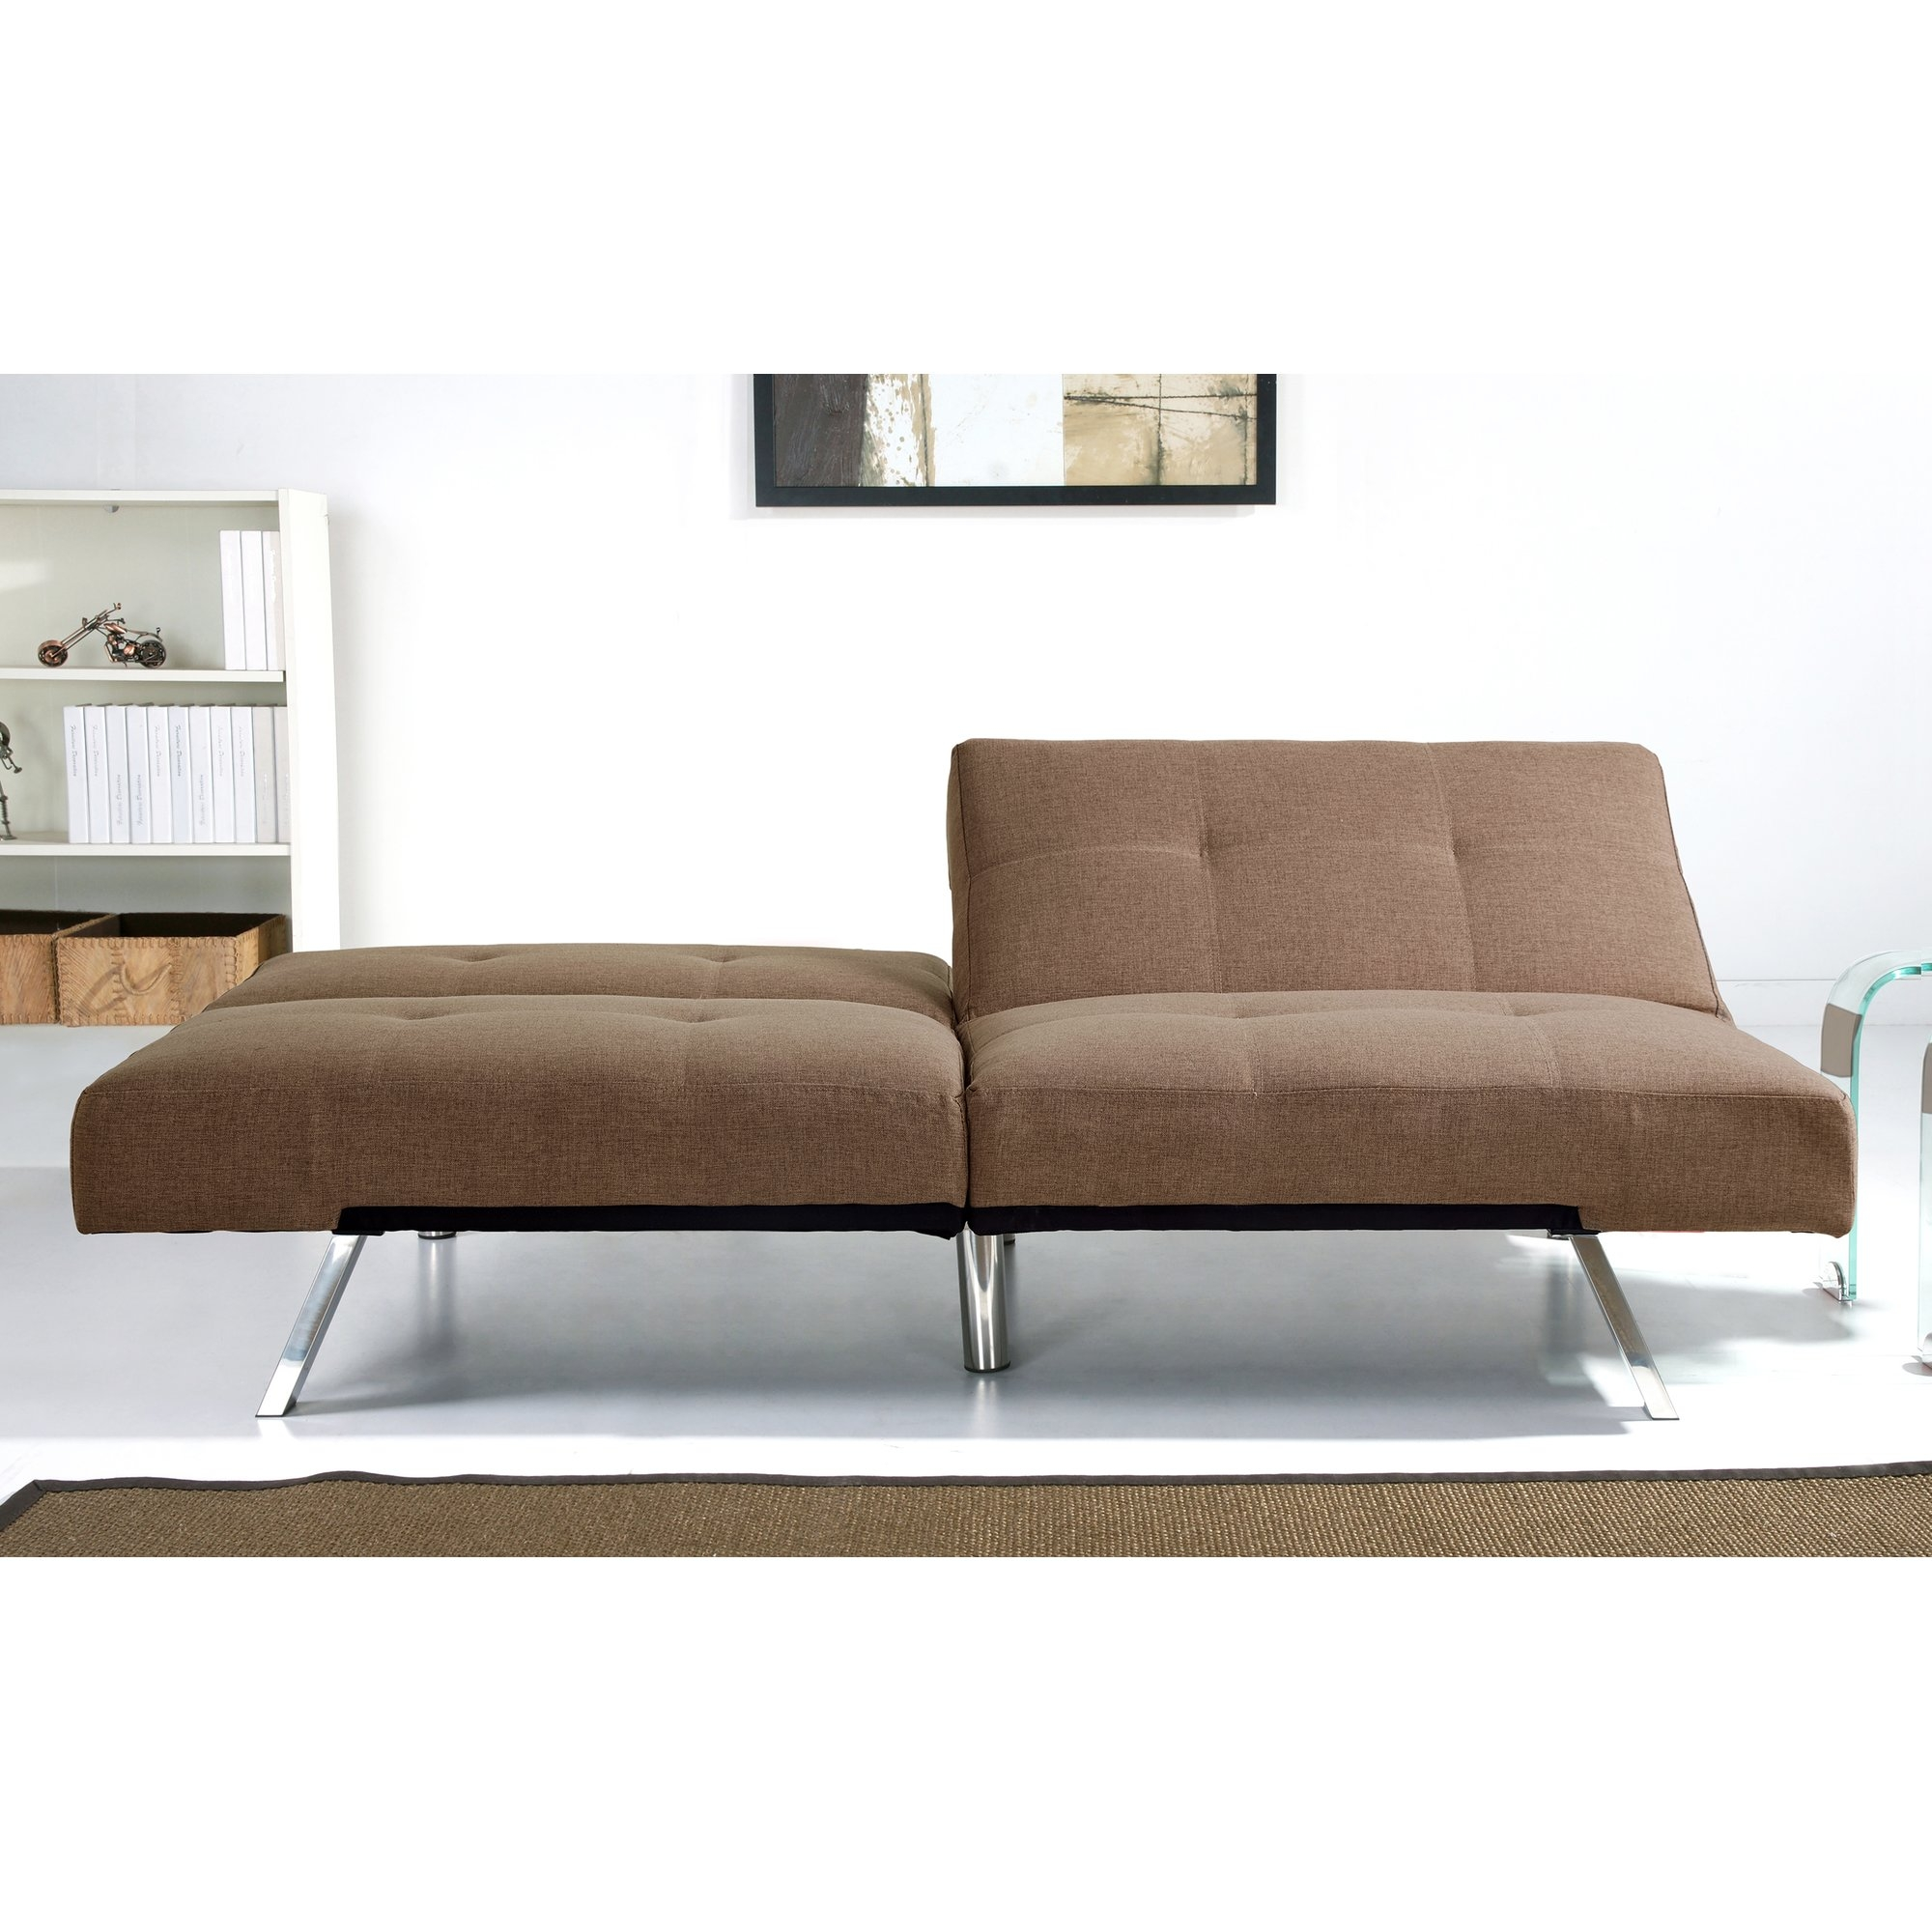 70 Sleeper Sofa 70 Inch Wide Sleeper Sofa Wayfair Thesofa